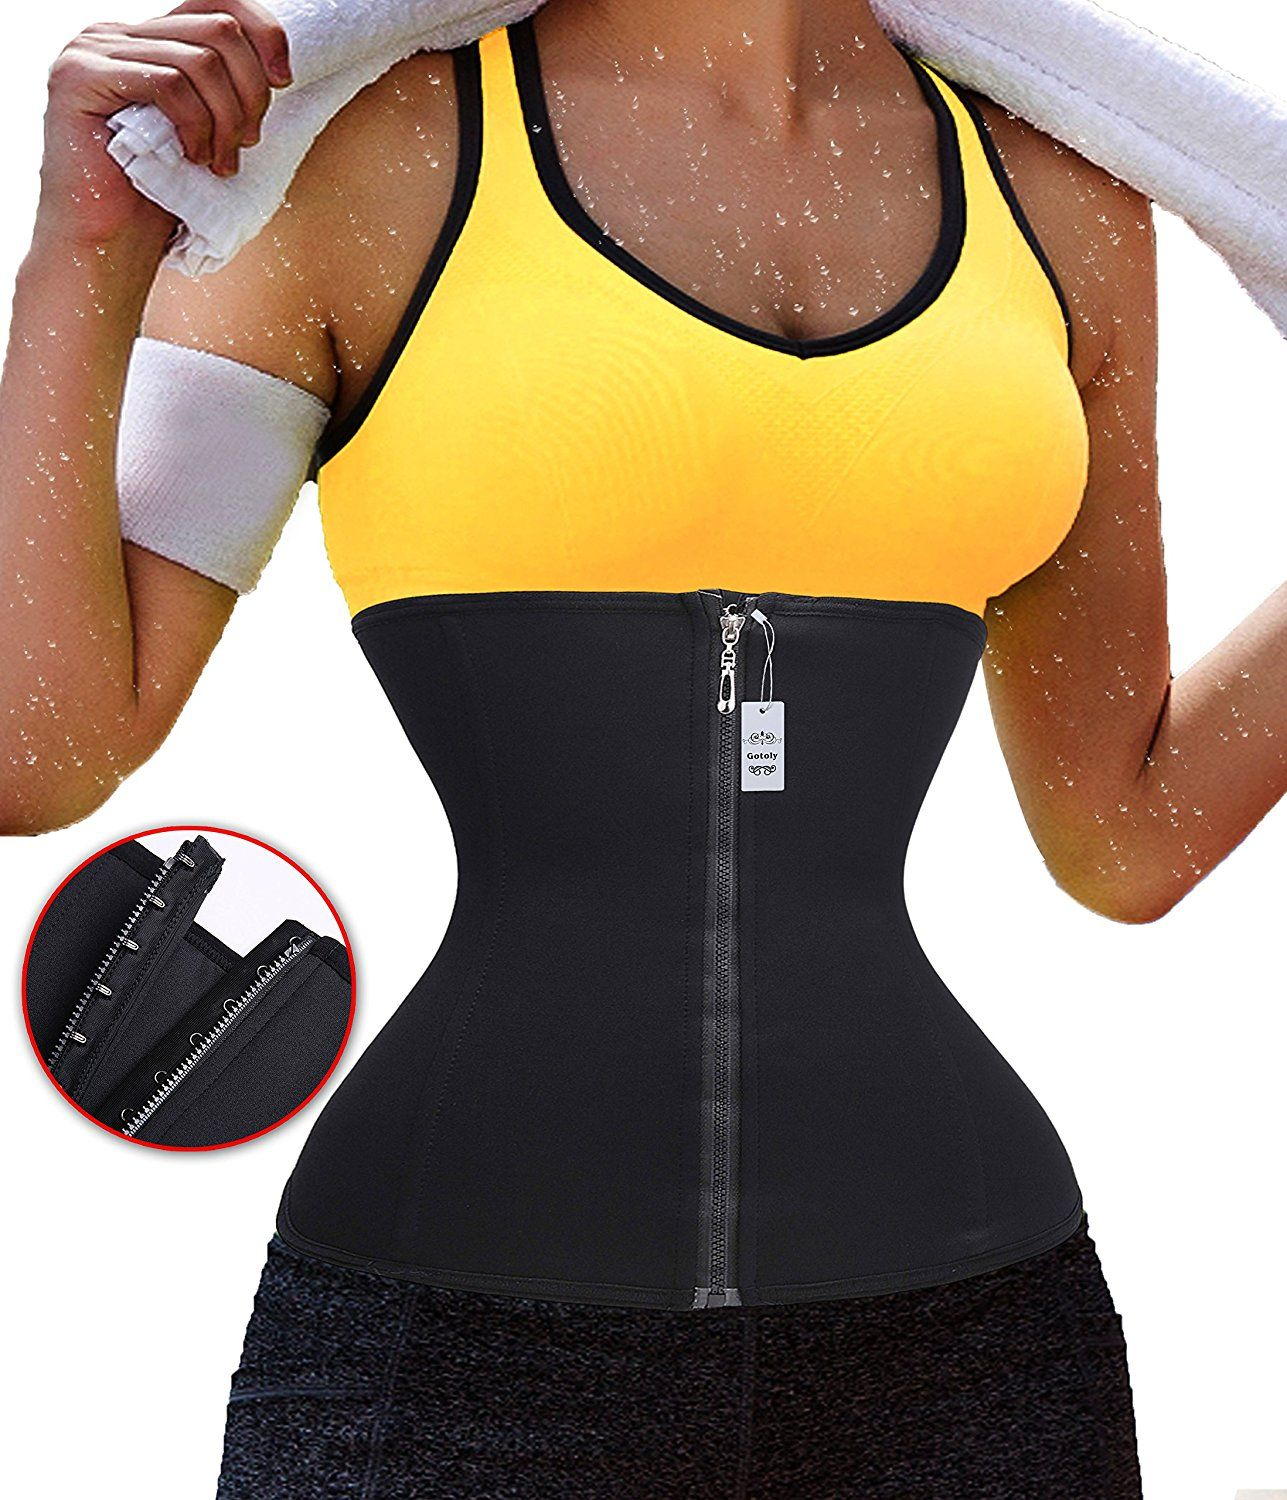 a651aa70a5082 Gogoly Zipper Hook Eliminates muffin top Fitness Yoga Waist Trainer for  weight loss    To view further